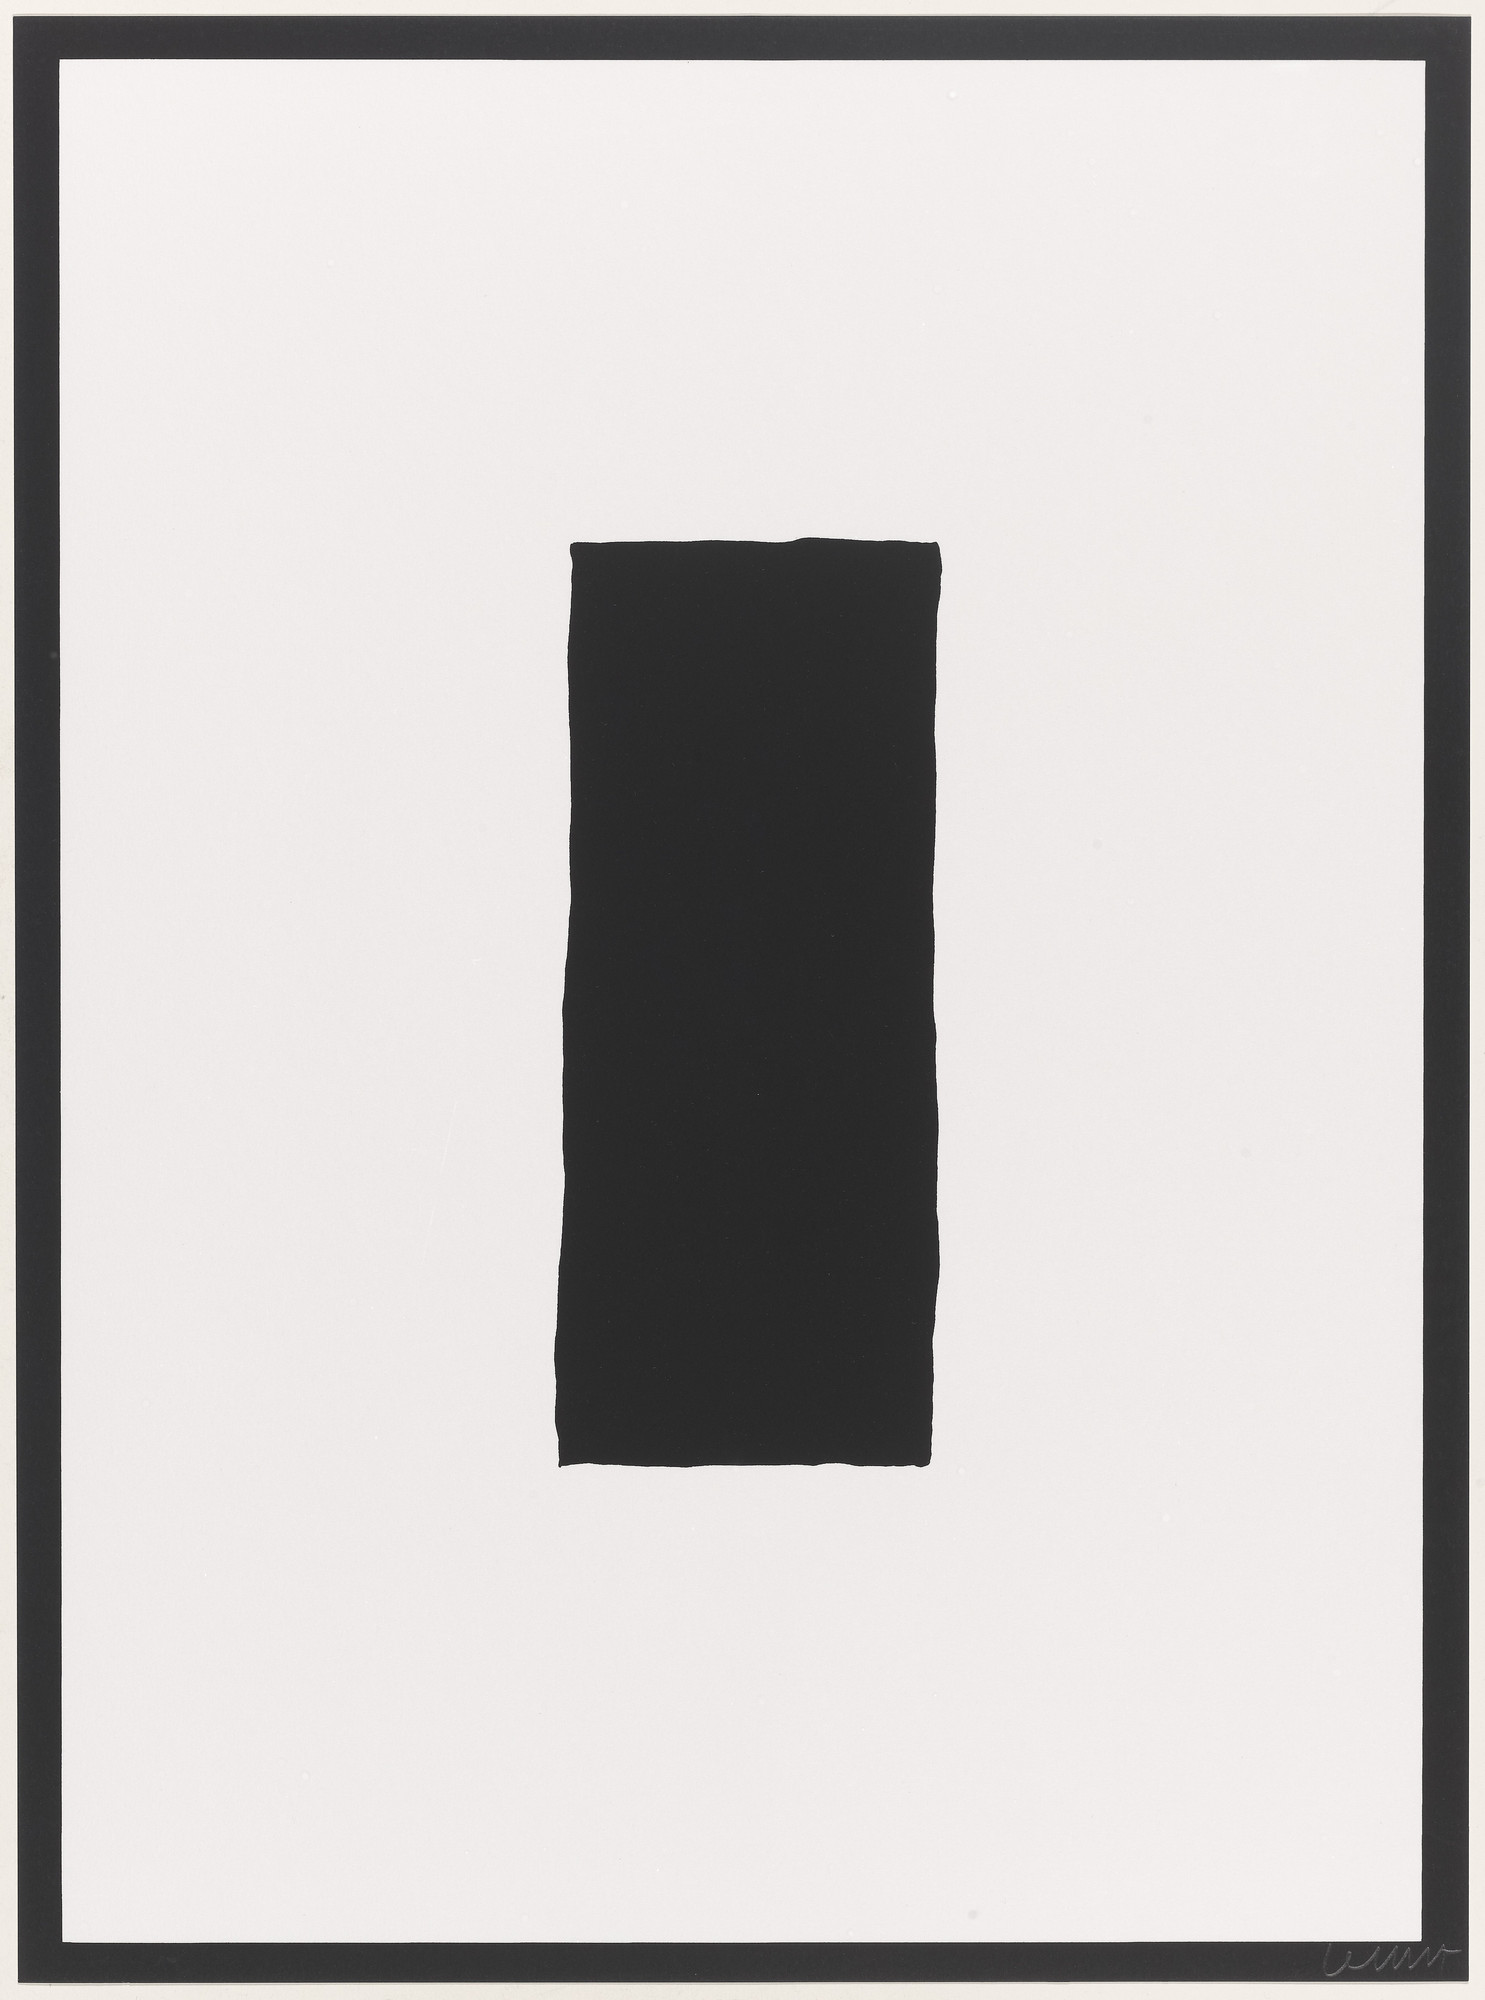 Sol LeWitt. Untitled from Vanish. 1994